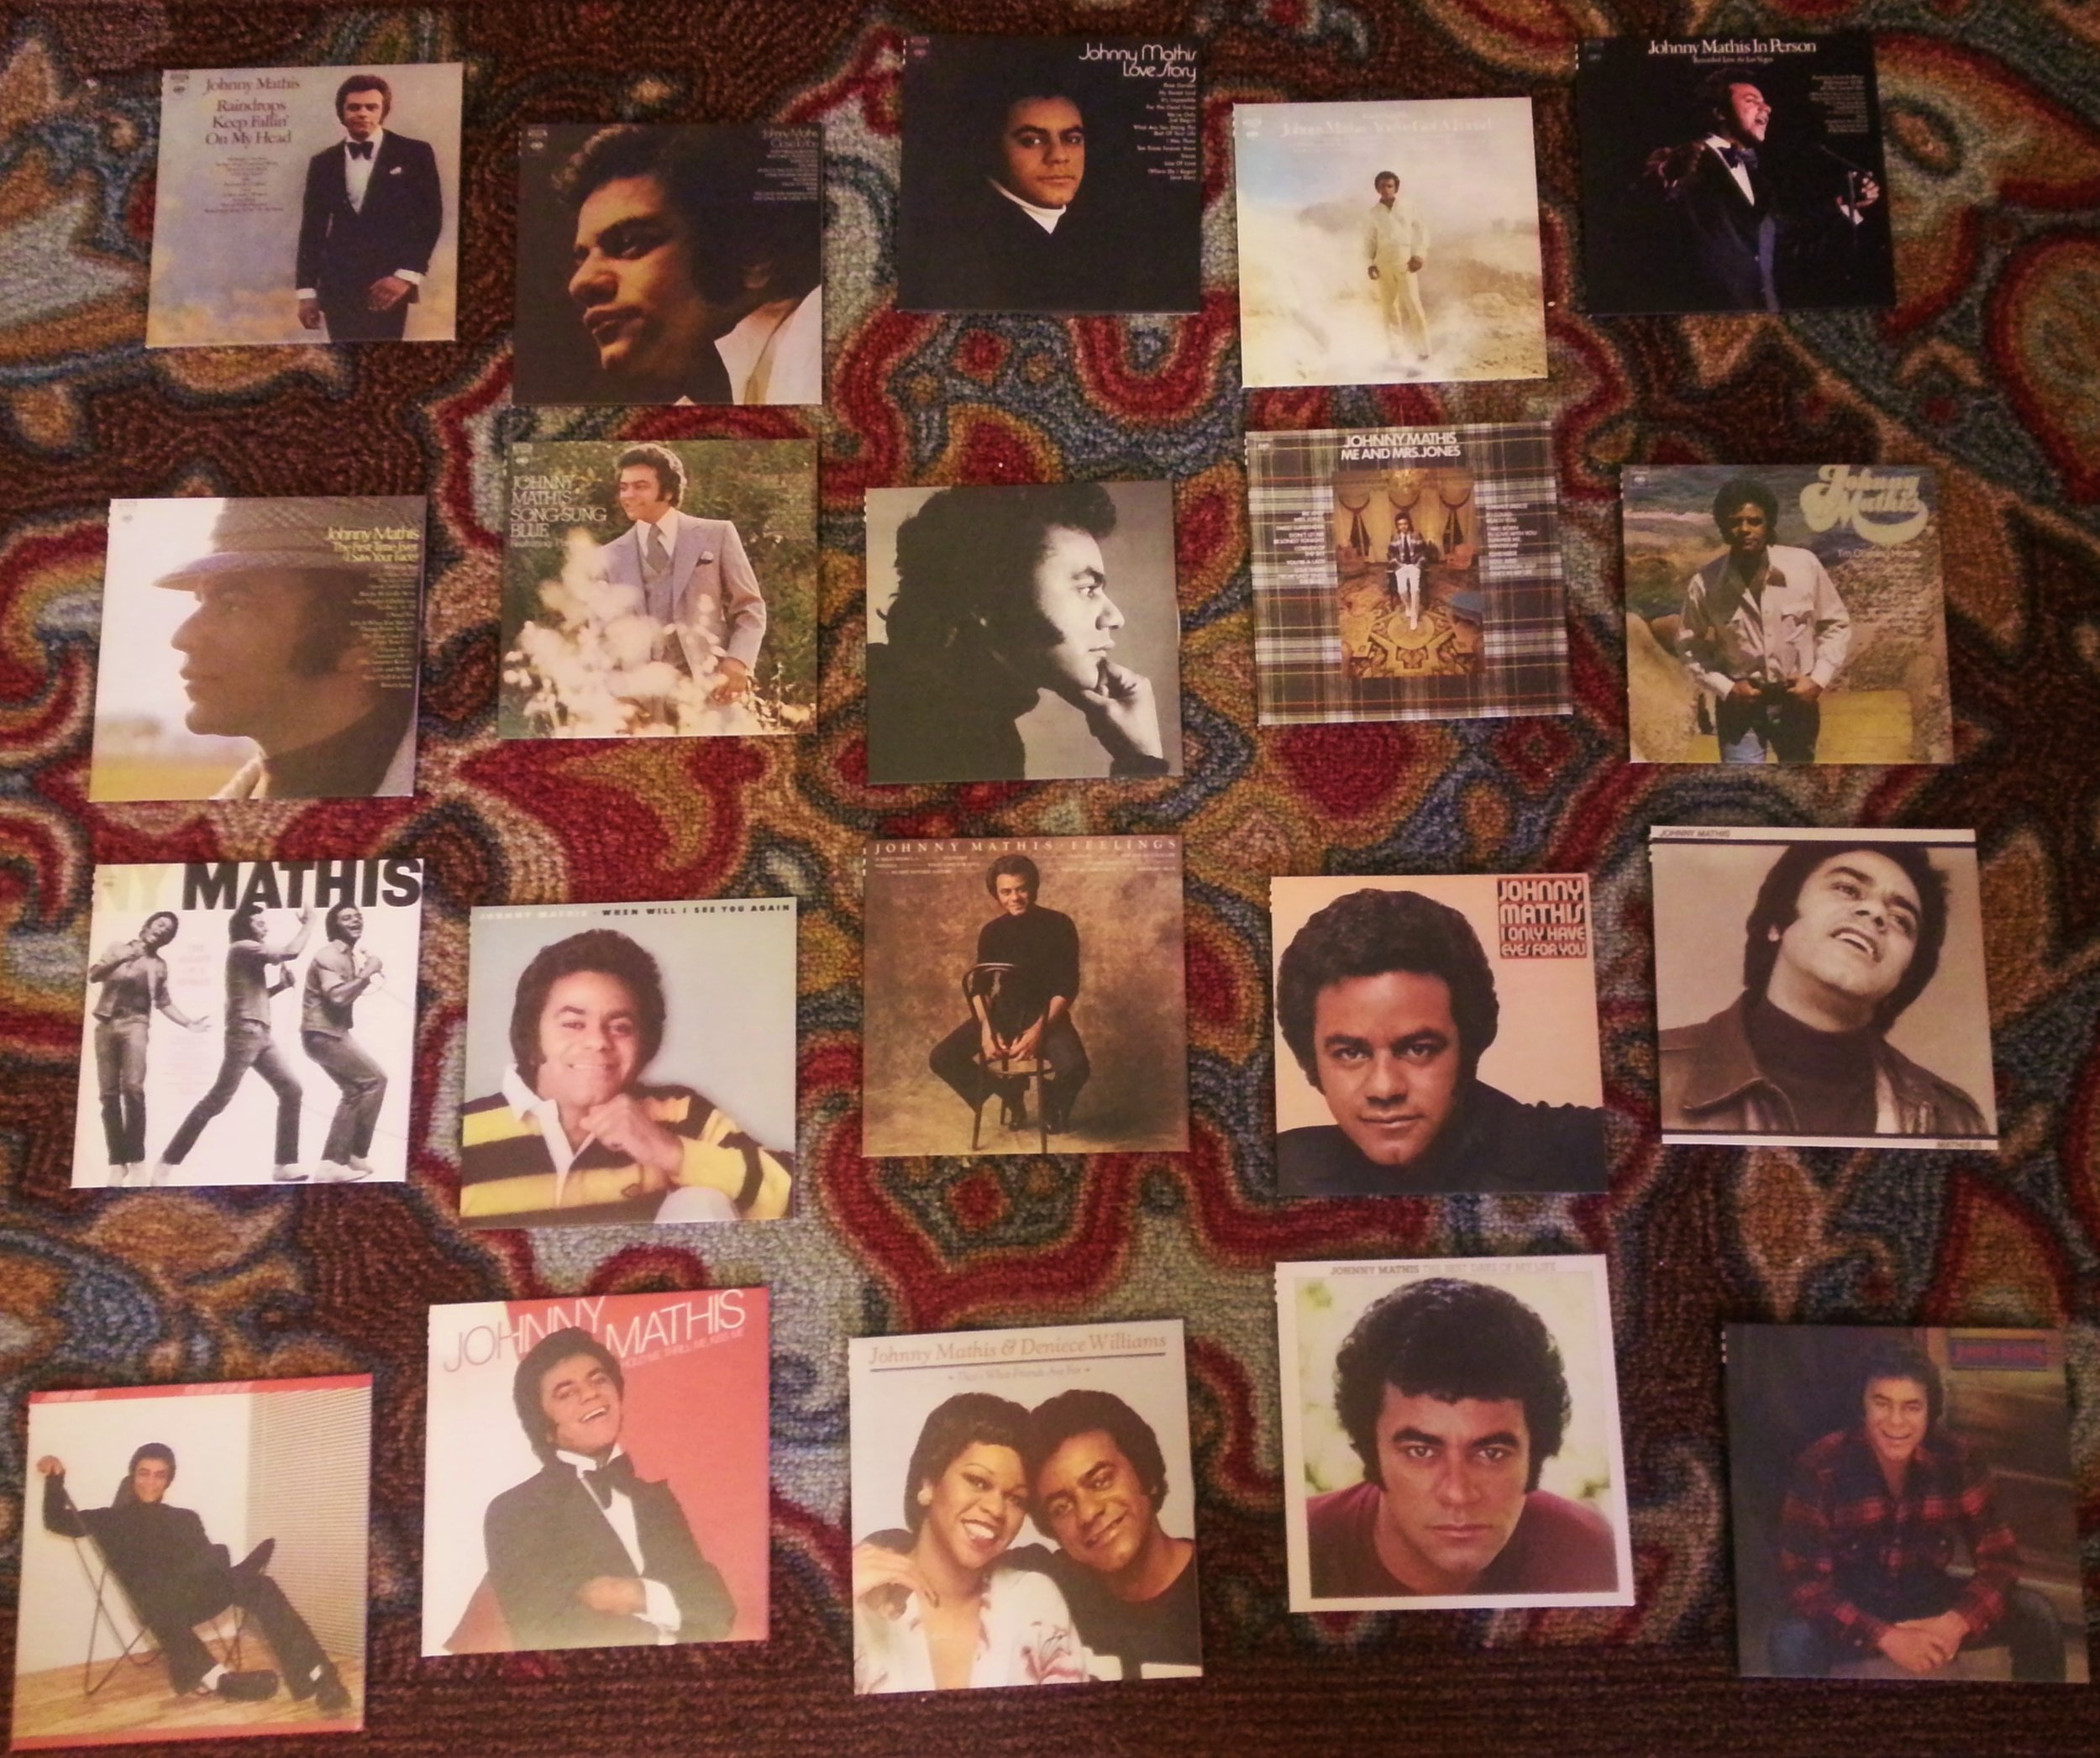 The 1970's was a prolific decade for Mathis who released 20+albums during the decade!